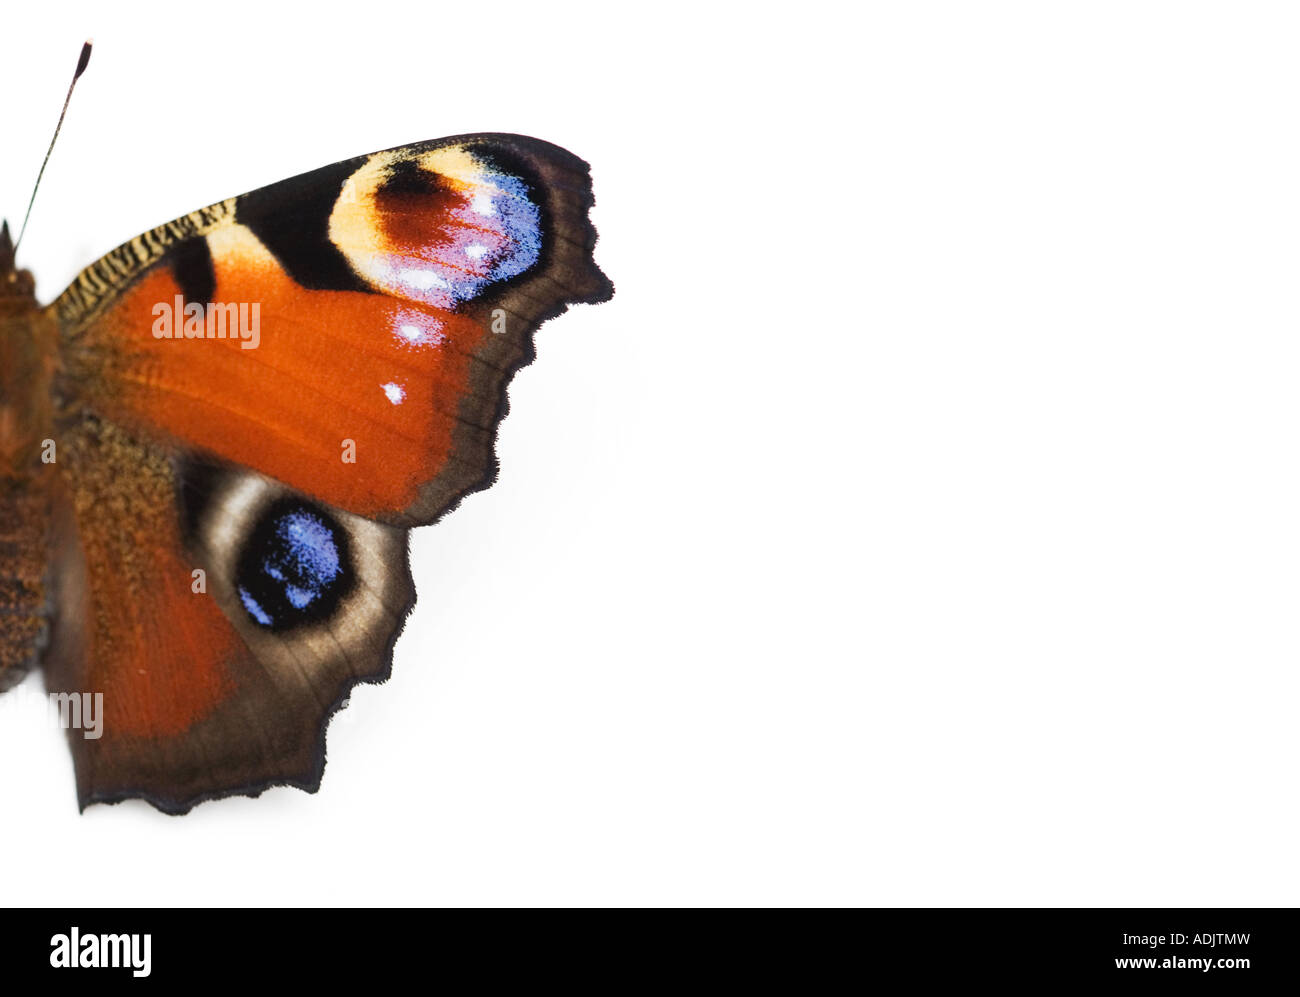 Inachis io. Peacock butterfly on white background - Stock Image